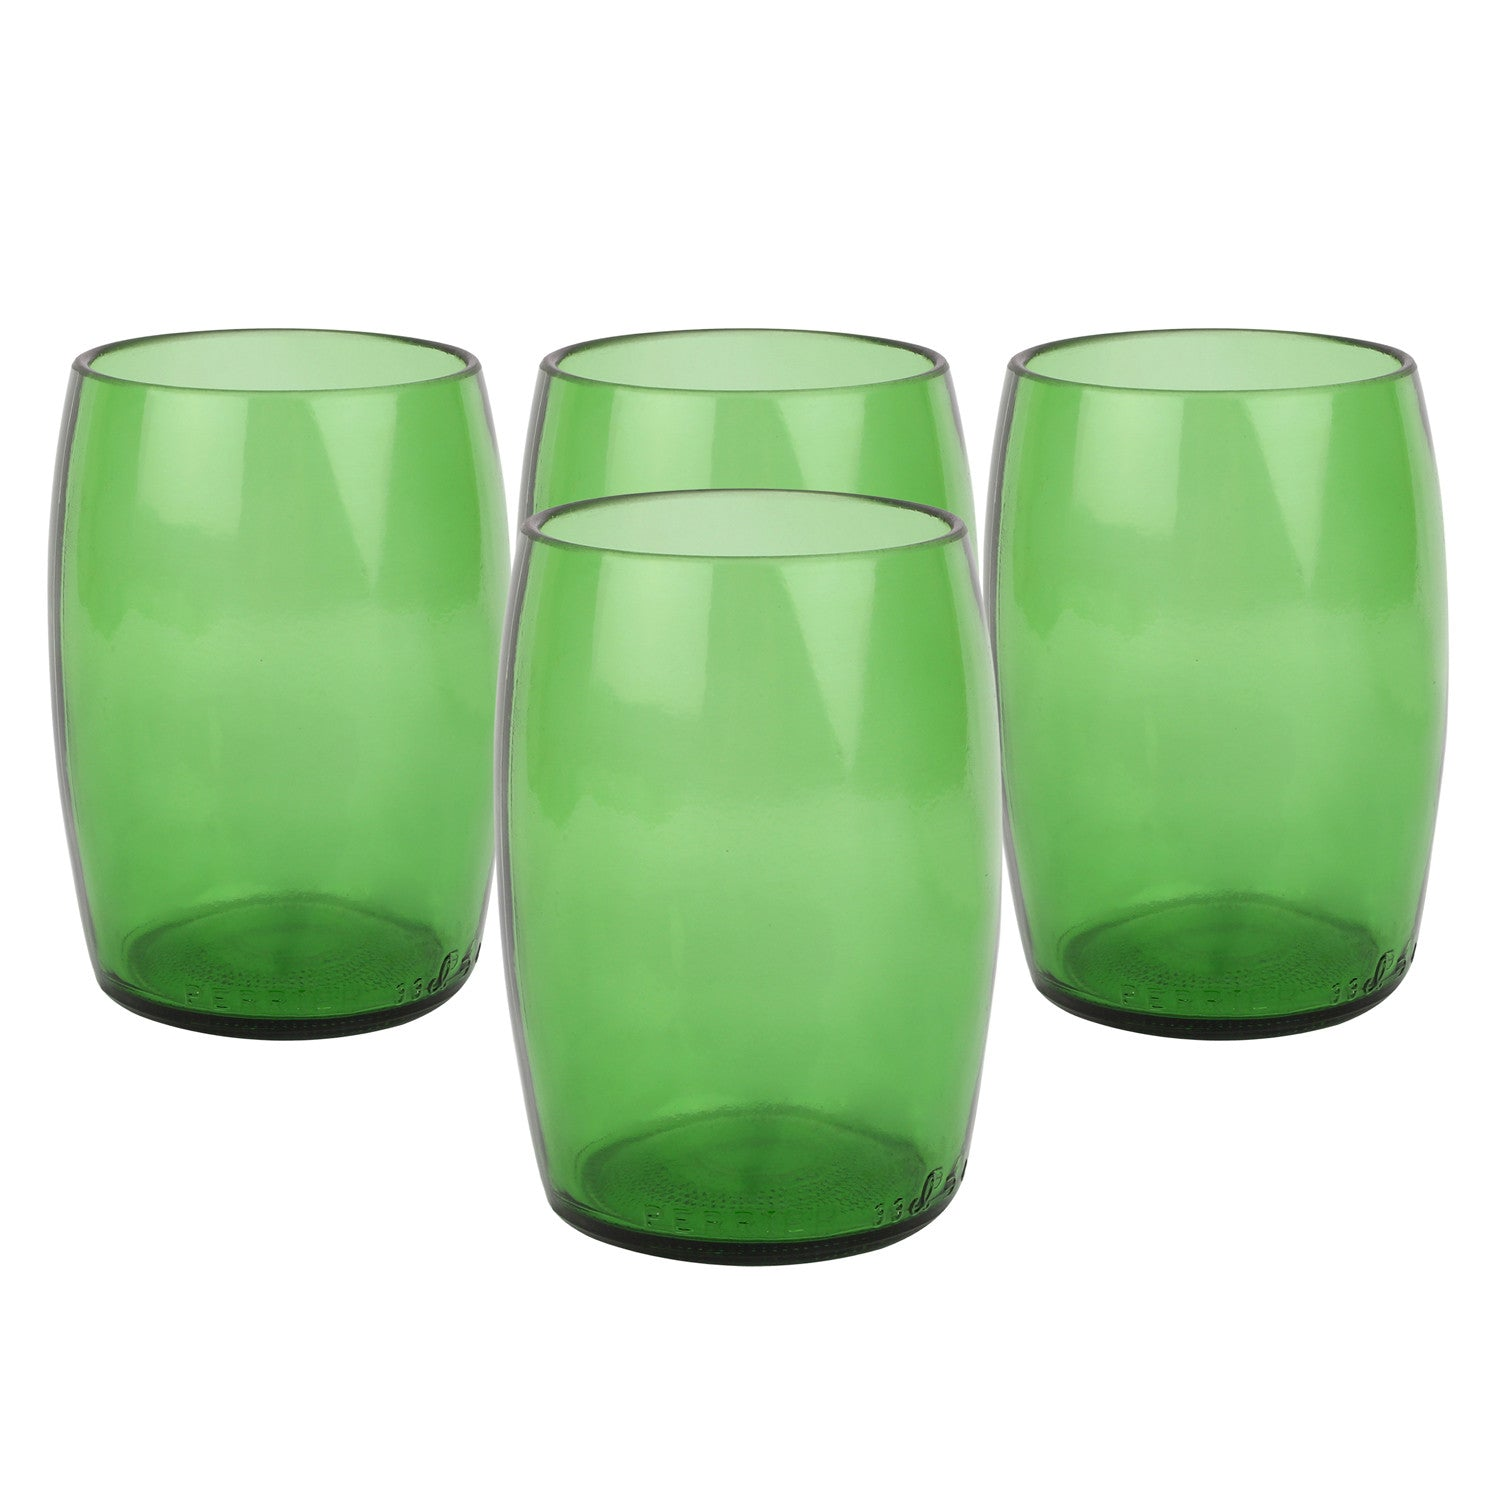 Upcycled Water glass- Beer (set of 4) - Green The Map Upcycled Recycled Fairtrade Ecofriendly